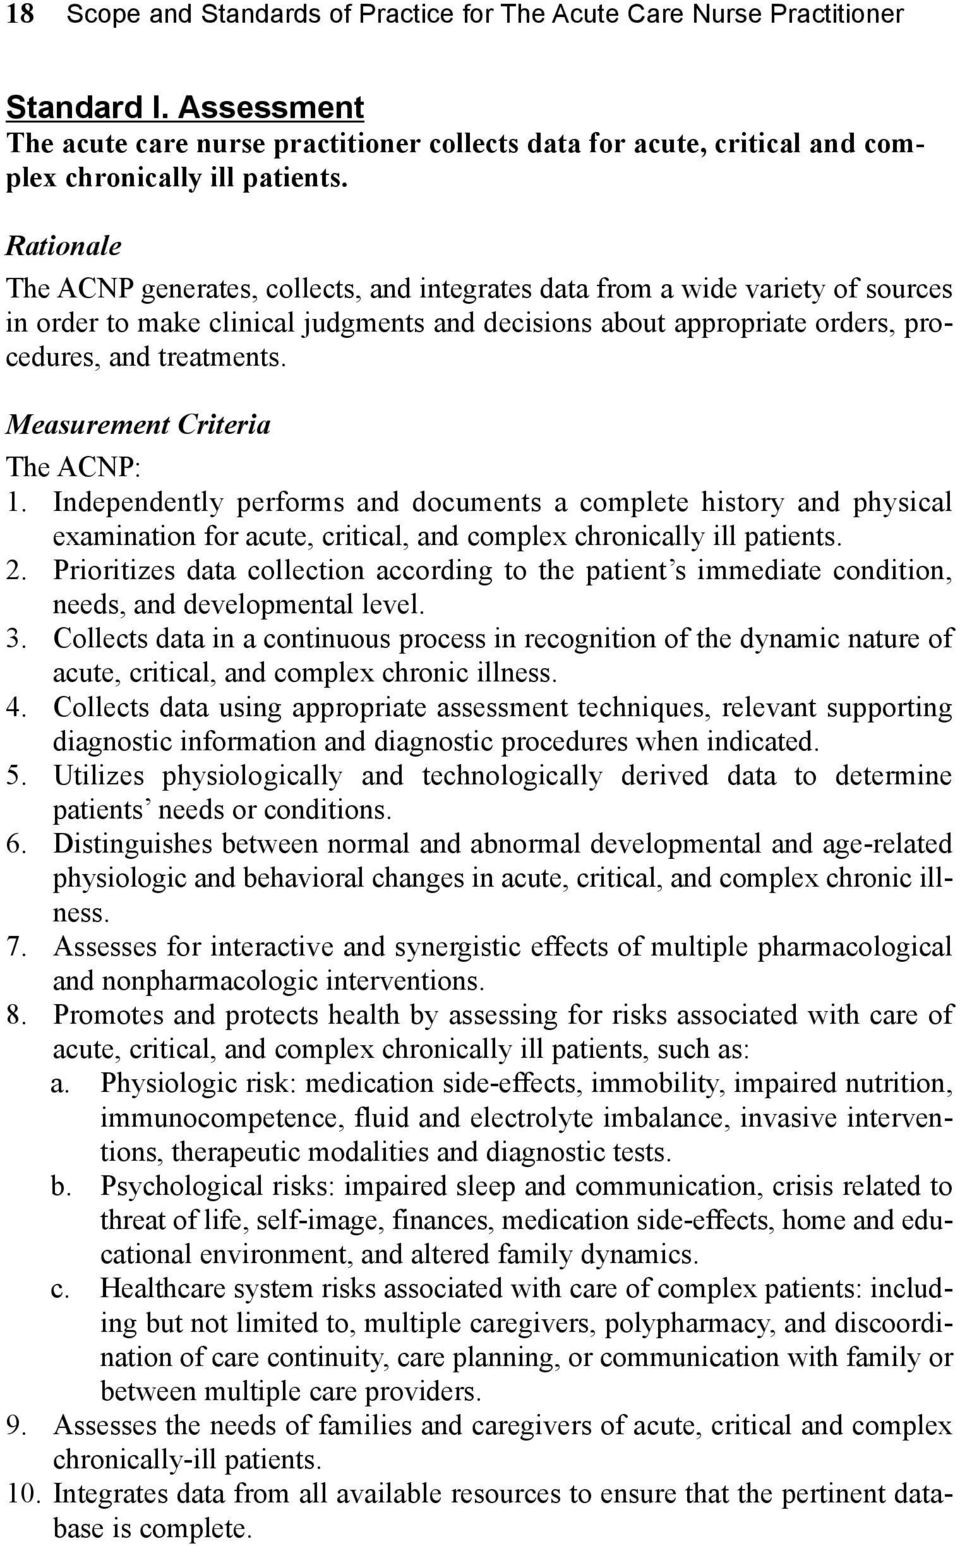 The ACNP generates, collects, and integrates data from a wide variety of sources in order to make clinical judgments and decisions about appropriate orders, procedures, and treatments. 1.